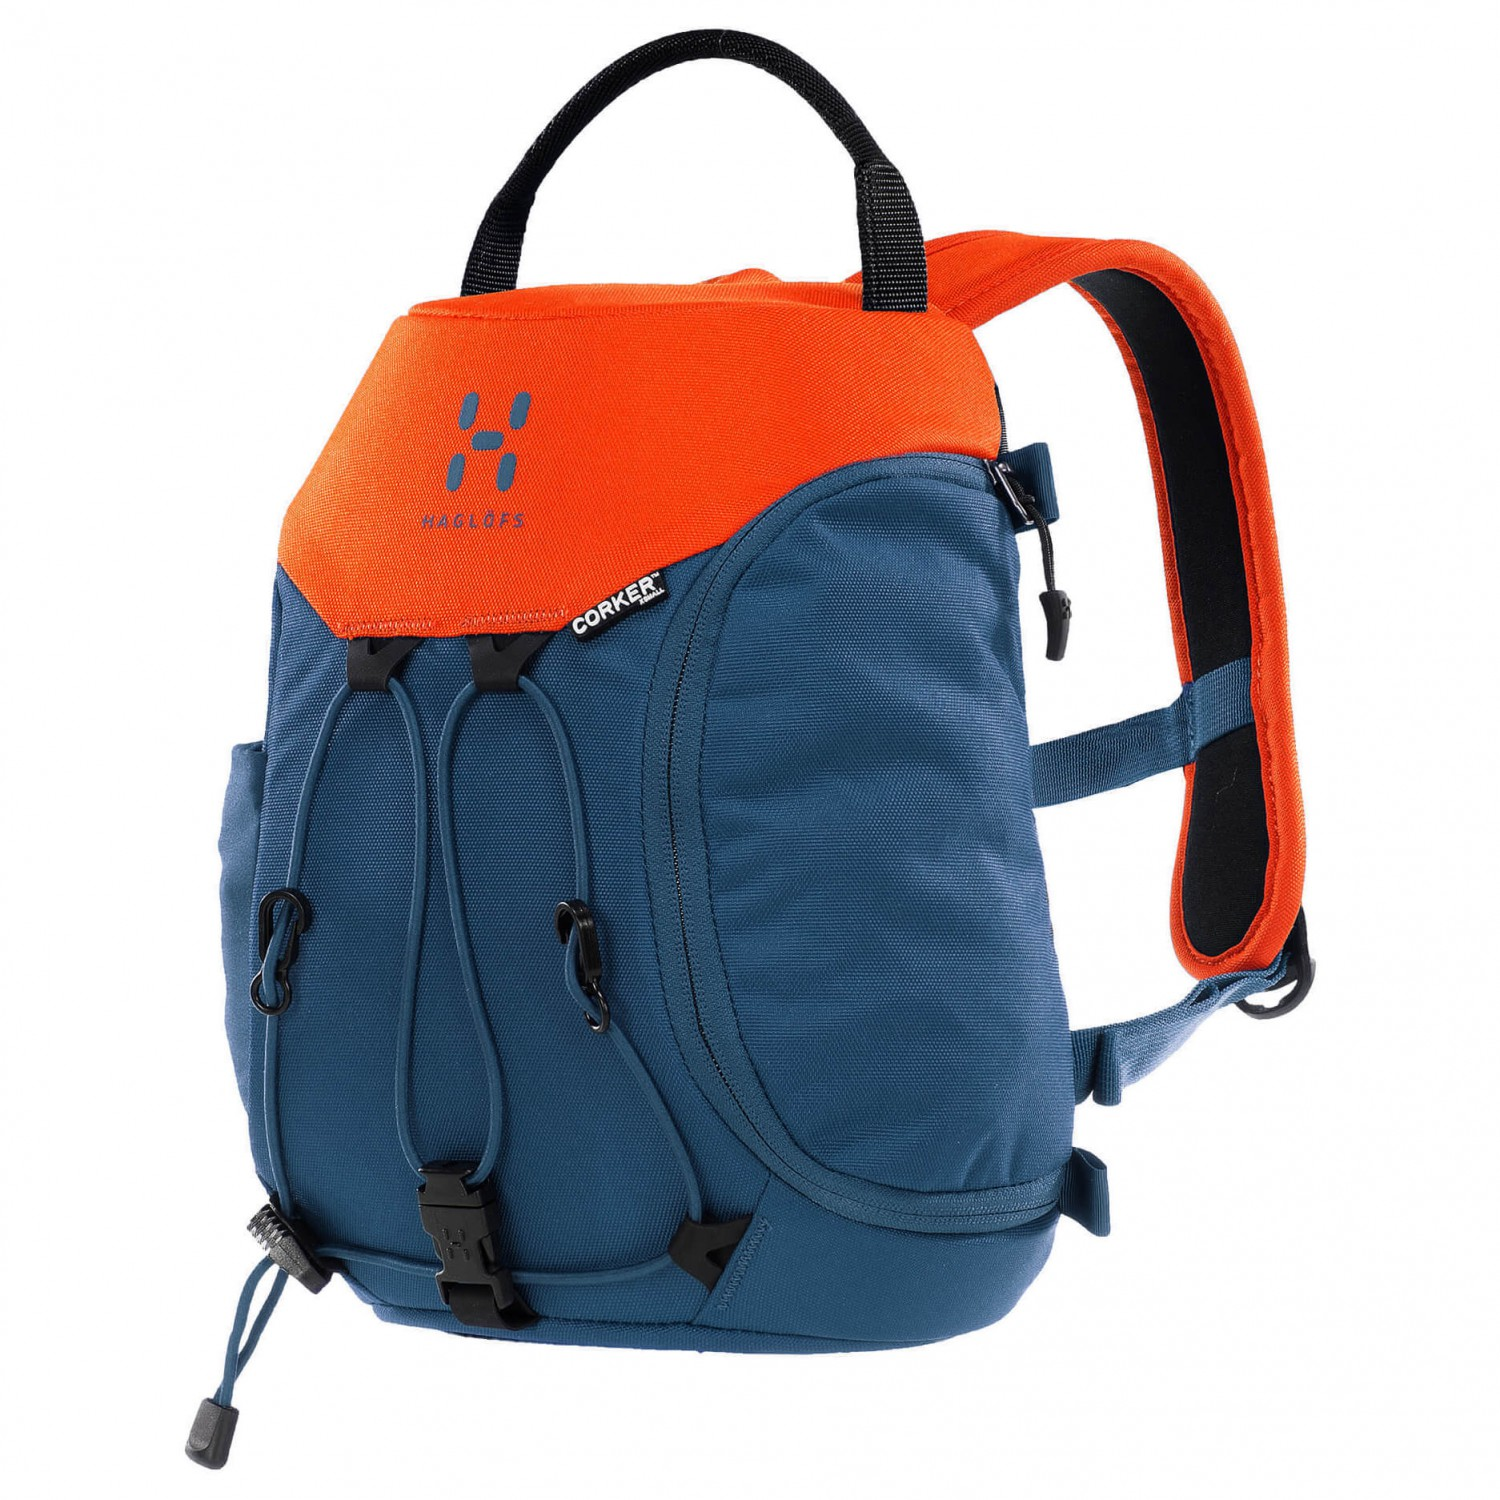 Haglofs Corker X Small 5 Backpack Kids Buy Online Bergfreunde Eu